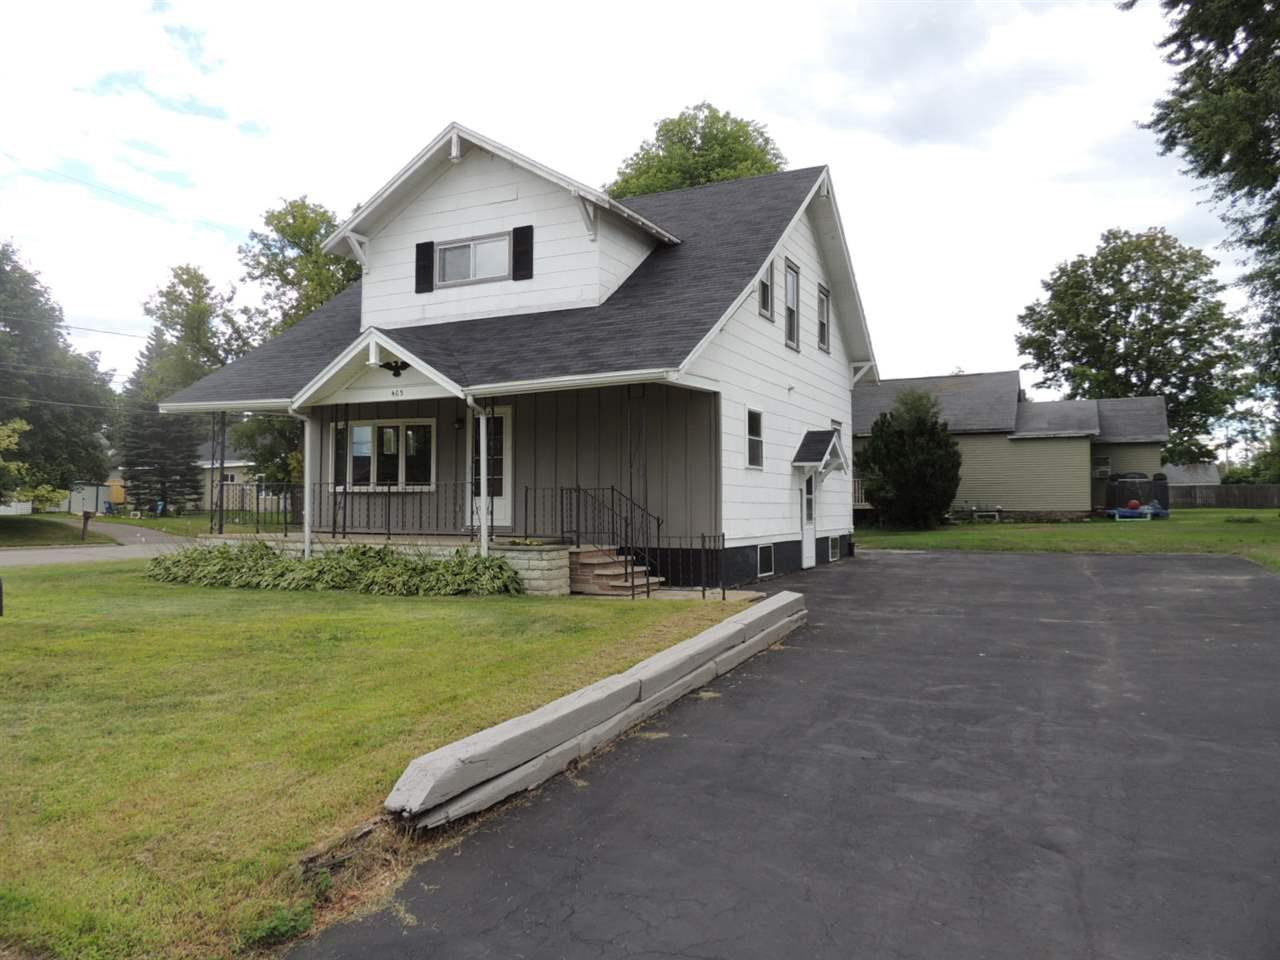 Very spacious 3 bed 2 bath updated home. Open concept main floor with office/den with full bathroom. Updated windows, all new paint and flooring. Updated kitchen with mostly newer cabinets. 2nd Floor has 3 bedrooms with more than ample closet space and a full bathroom. Clean full basement with laundry area. 20x9 Covered front porch. Attached smaller 1 car garage, a small storage shed and black top driveway. Priced to sell.. COME SEE!!